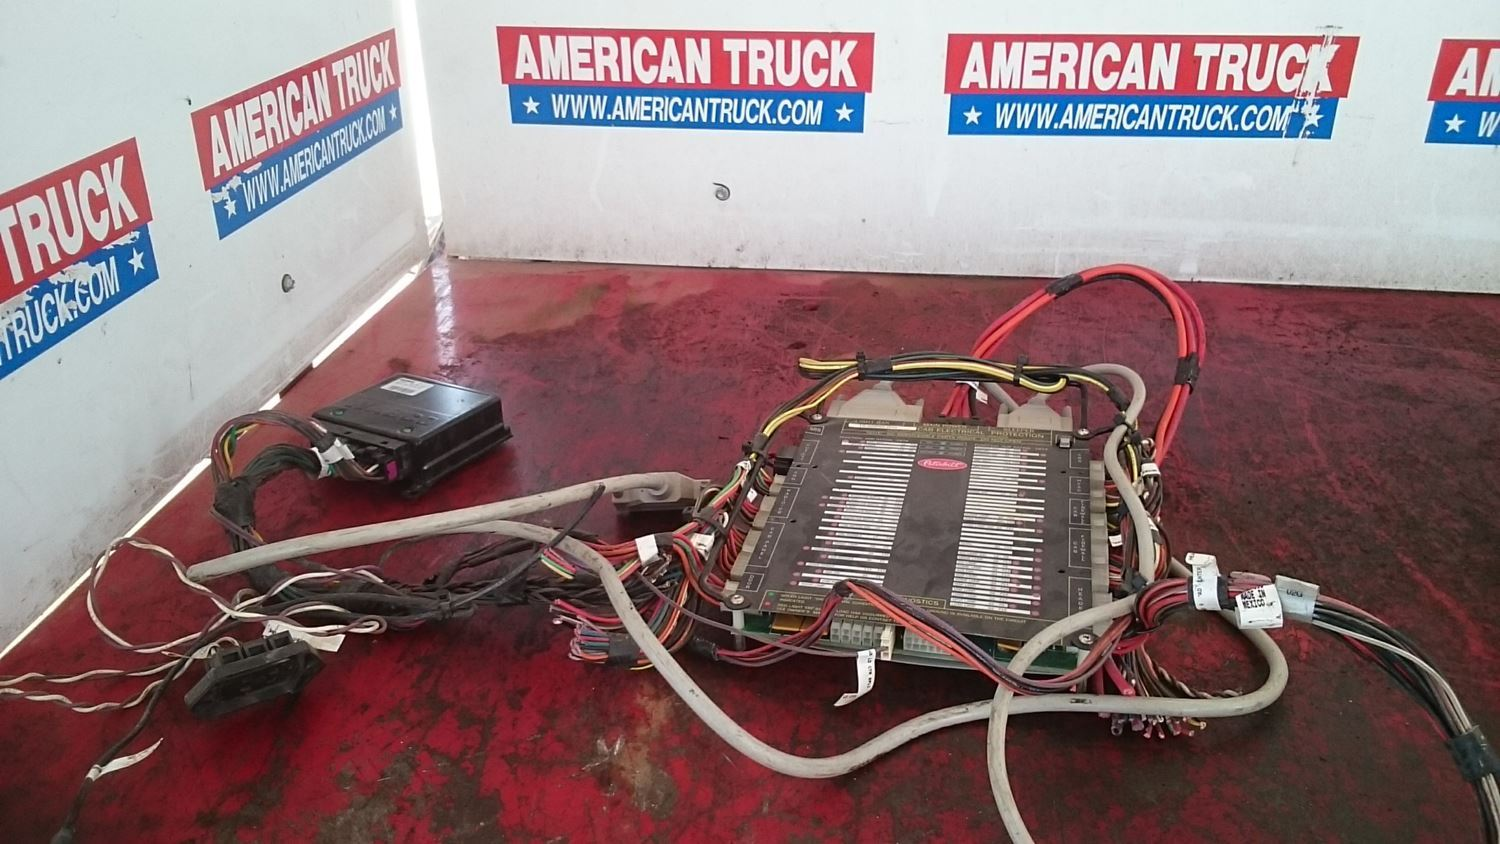 2006 peterbilt 379 headlight wiring diagram wiring diagram and peterbilt 379 headl embly on heavytruckparts 2006 peterbilt 379 headlight wiring diagram